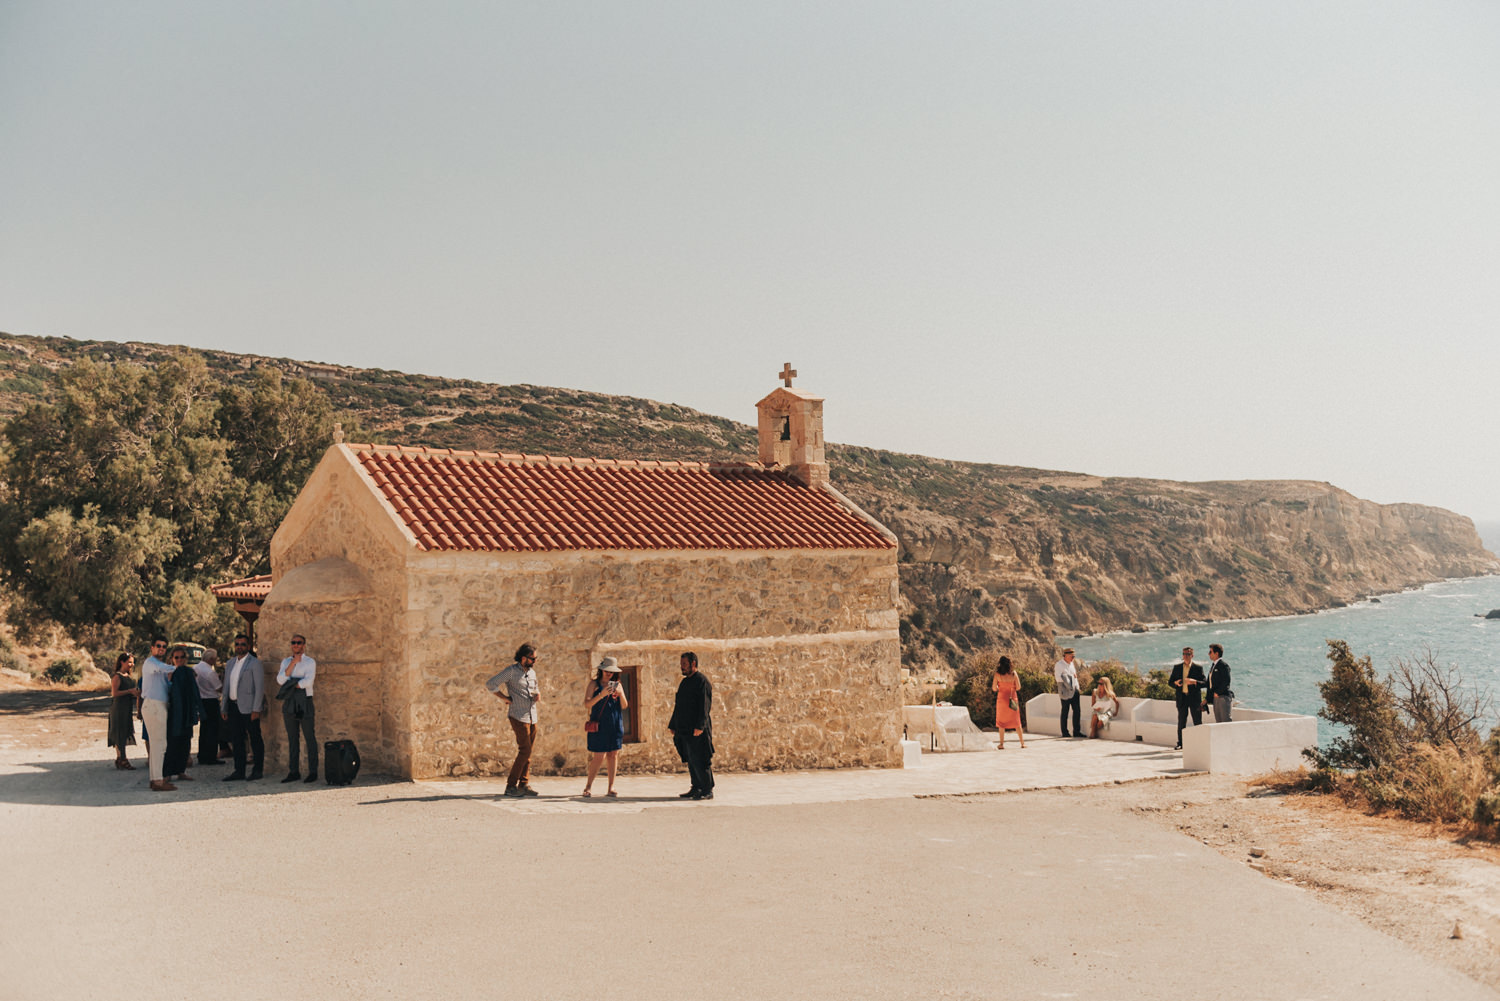 Hochzeitsfotograf-Kreta-Auslandshochzeit-Destination-wedding-crete-greece-wedding photographer